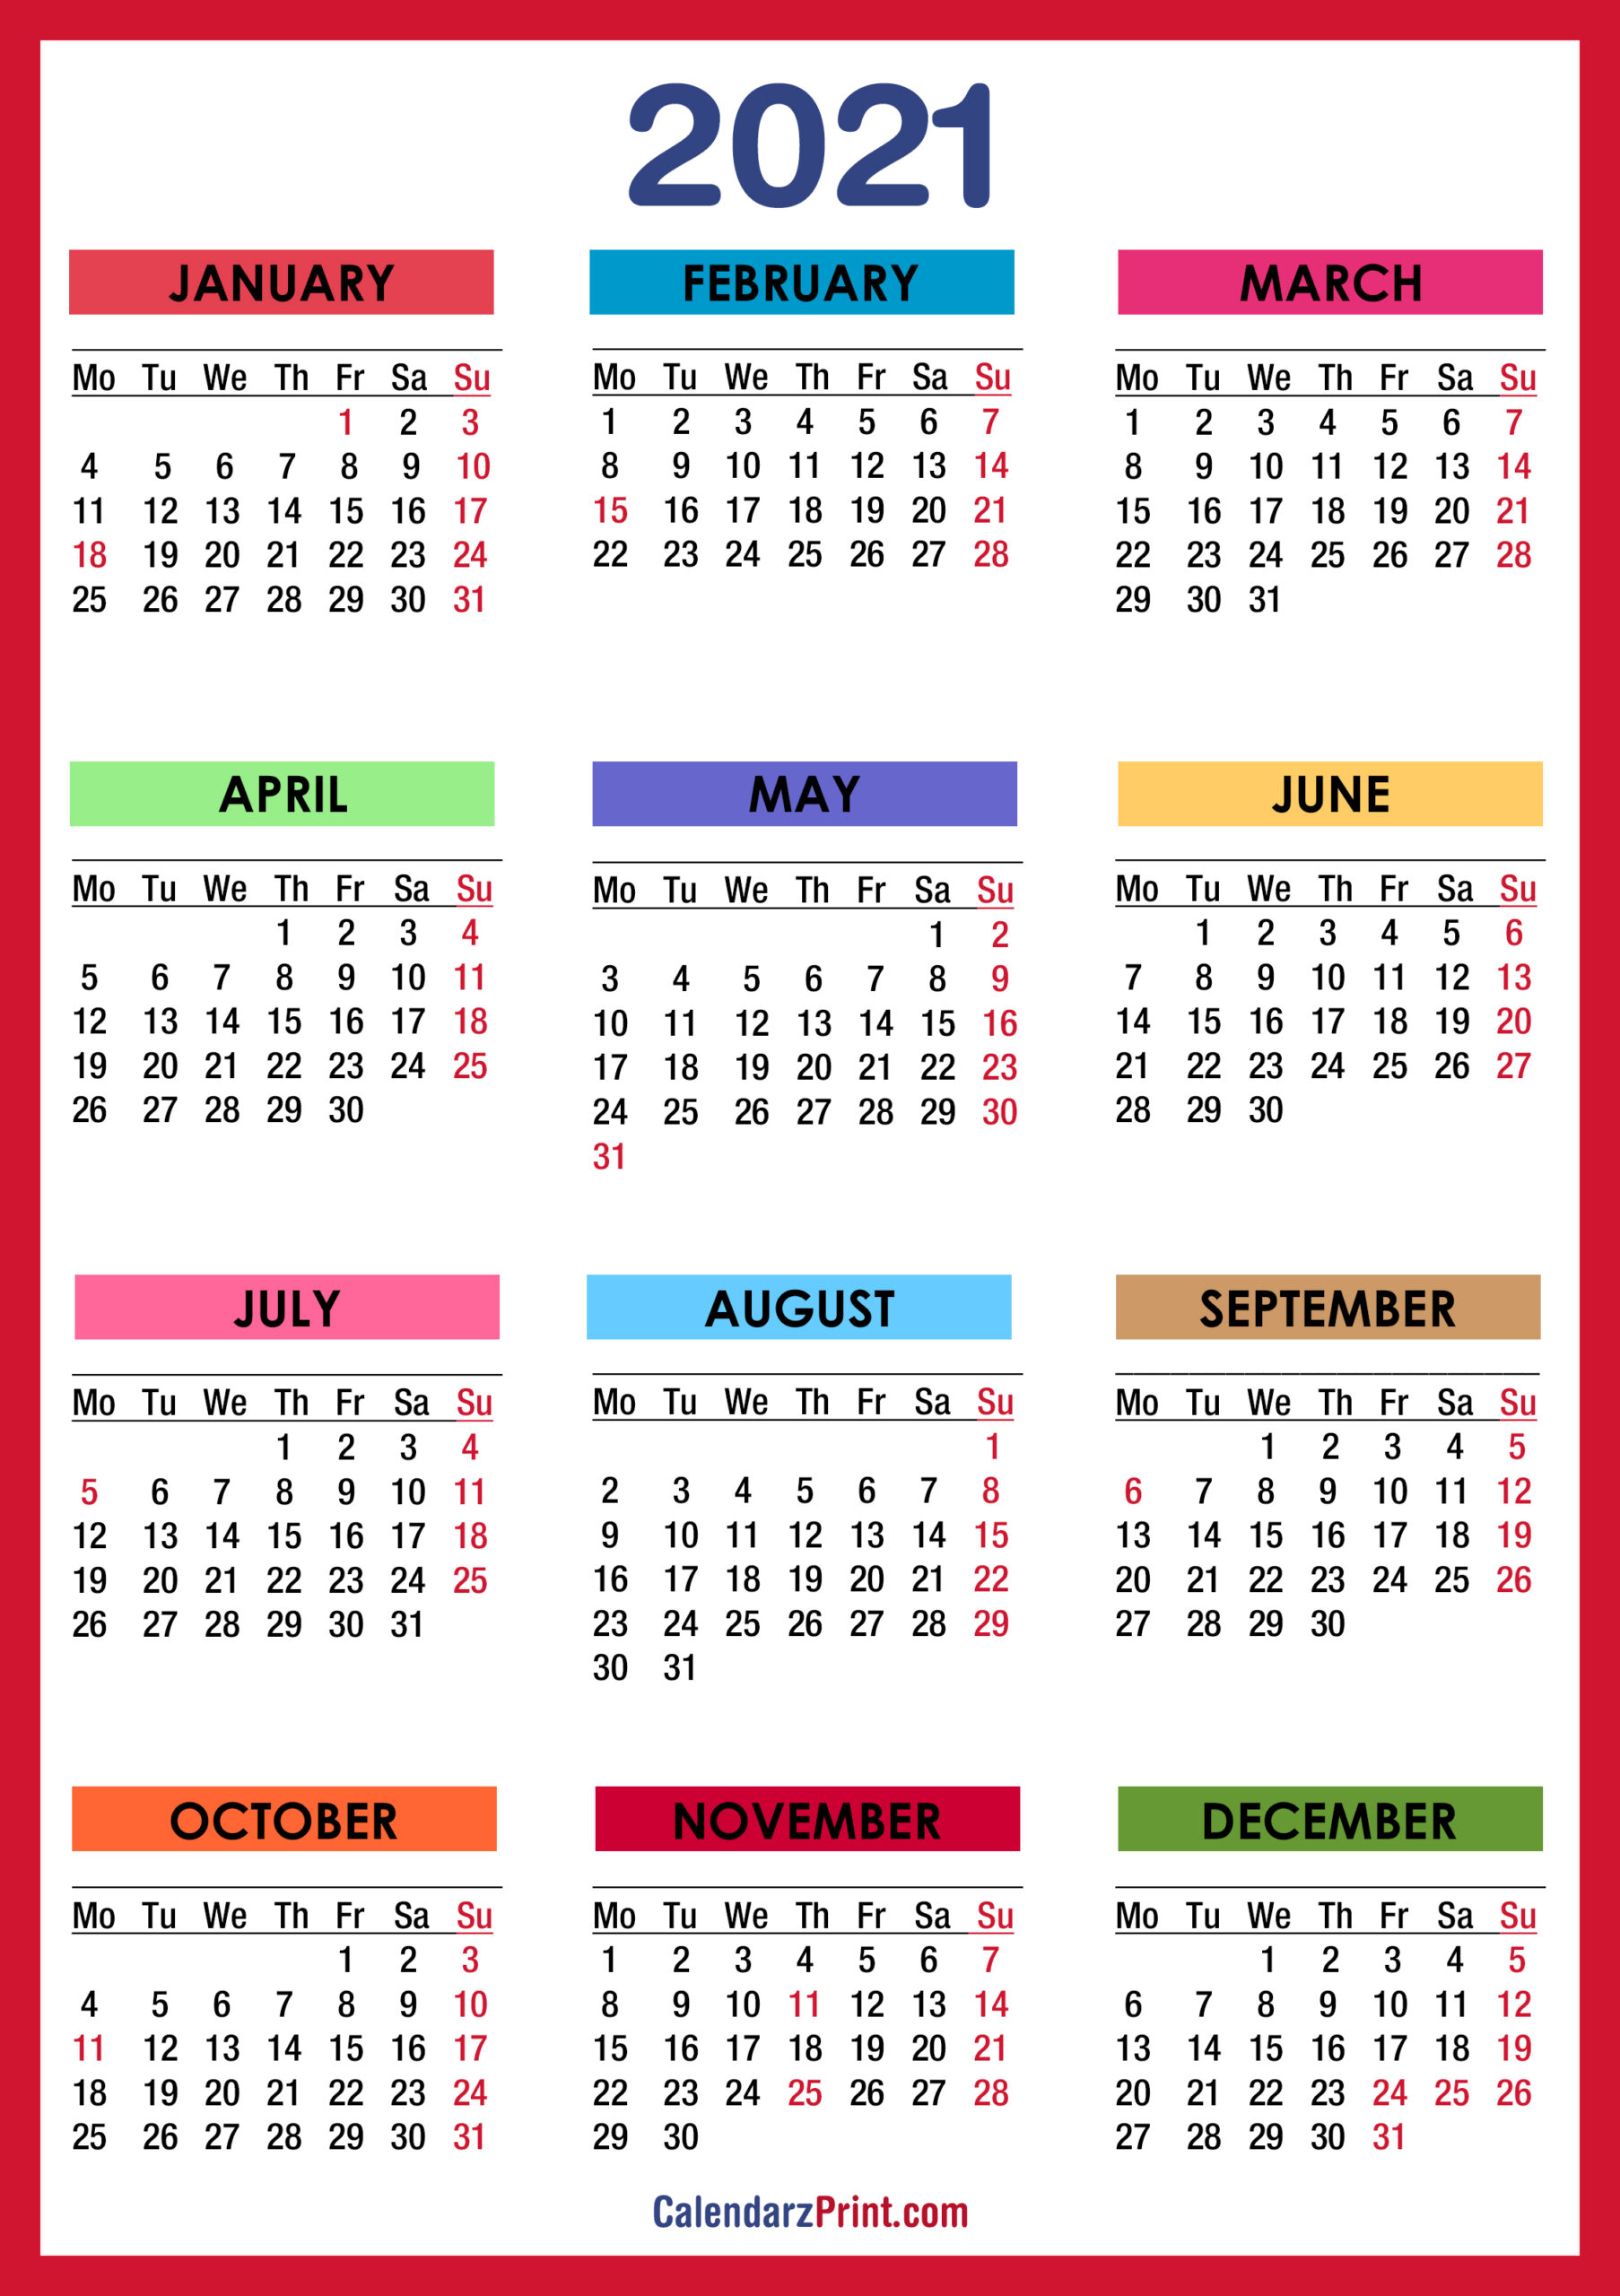 2021 Calendar With Holidays, Printable Free, Colorful, Red